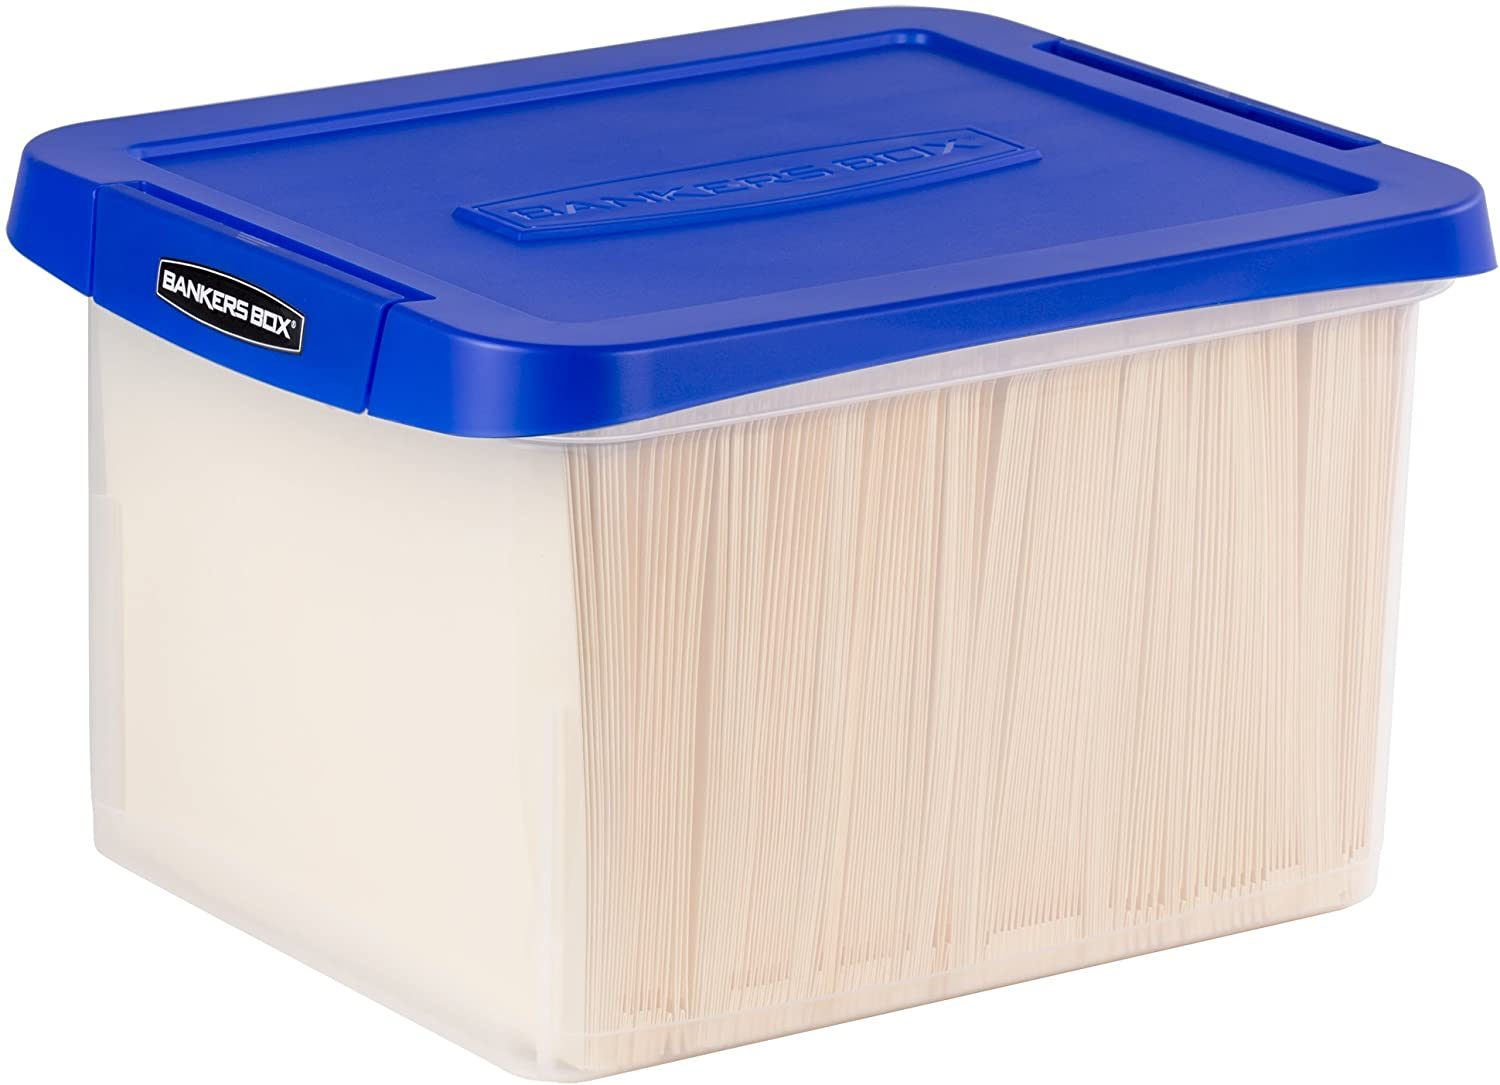 2. Bankers Box Heavy Duty Plastic File Box with Hanging Rails